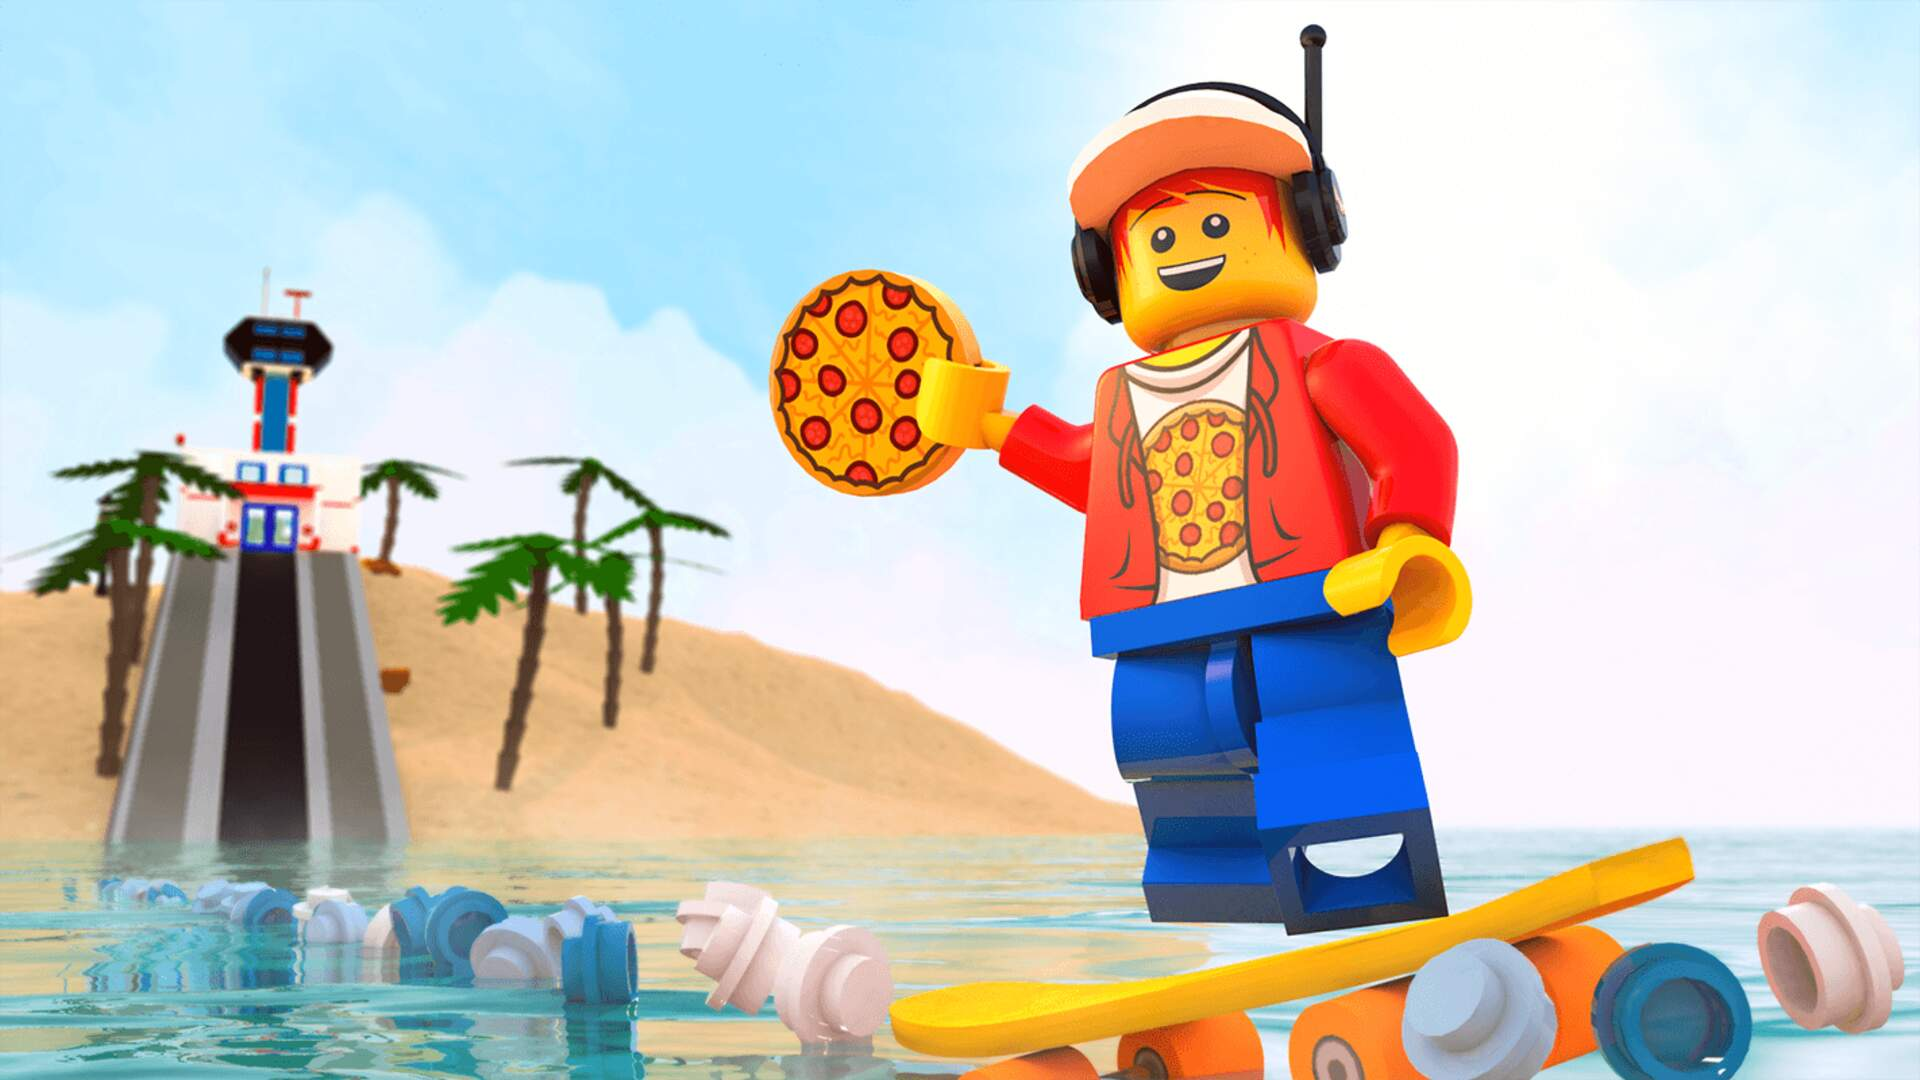 Mojang and Lego Talked About Making a Lego Minecraft Game, Lego Reveals